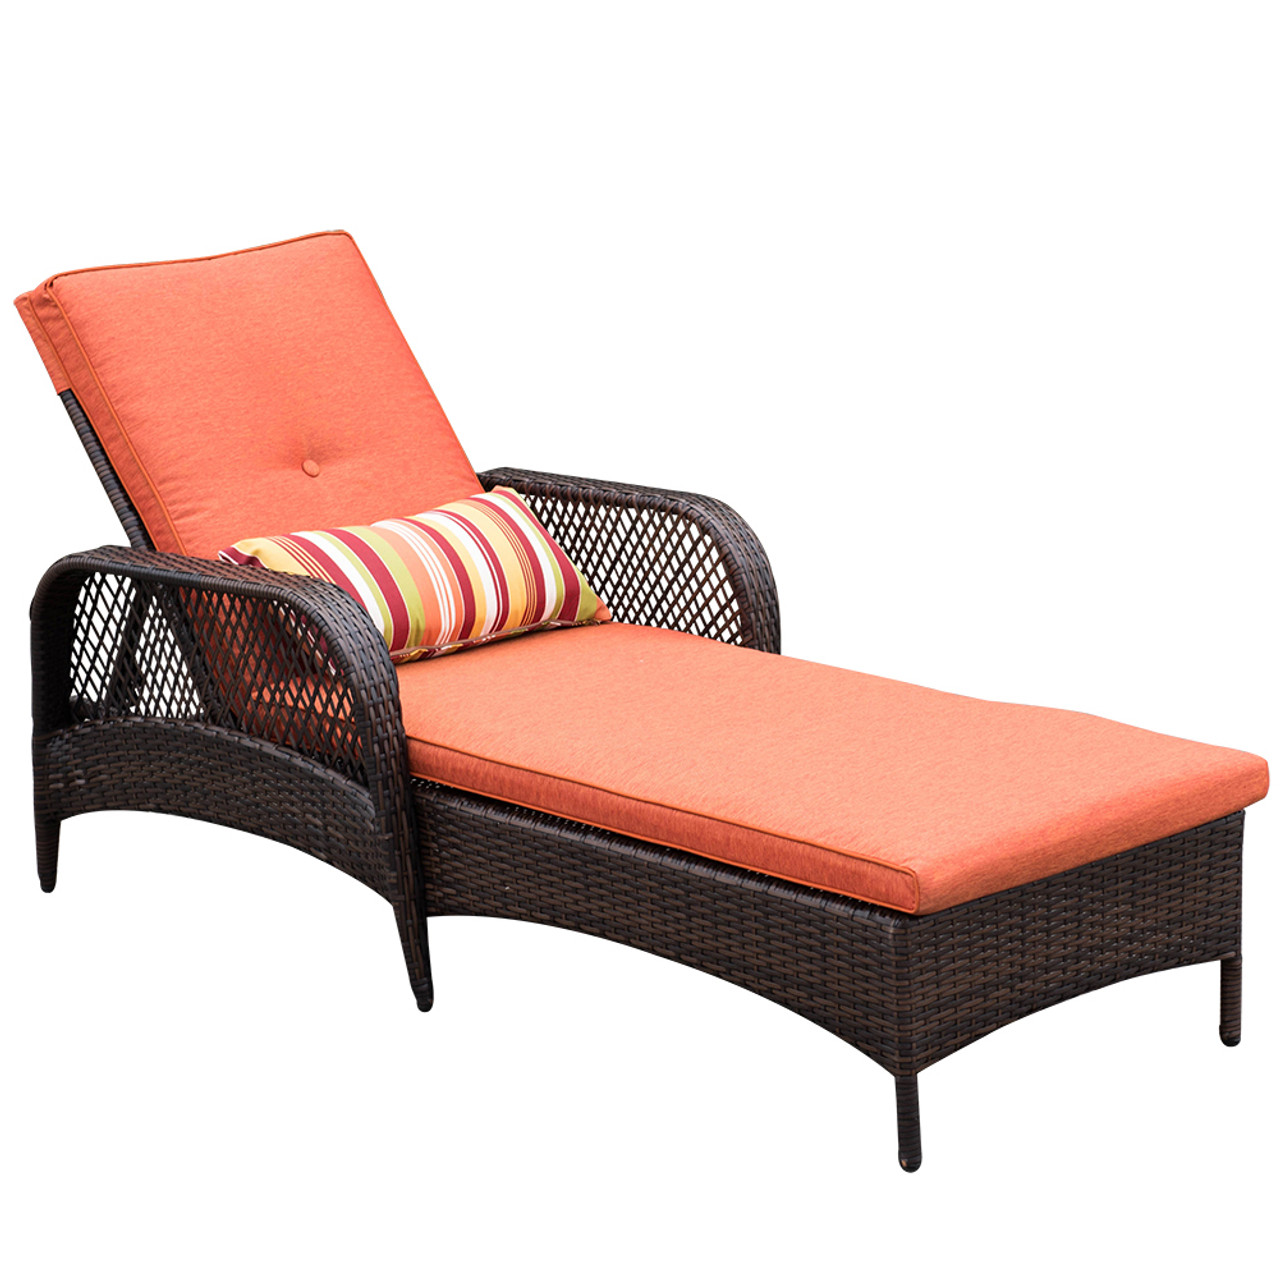 chaise lounge chair outdoor. Luxury Reclining Brown Wicker Chaise Lounge Chair Outdoor Patio Yard Furniture All-weather With Cushions And Pillow G